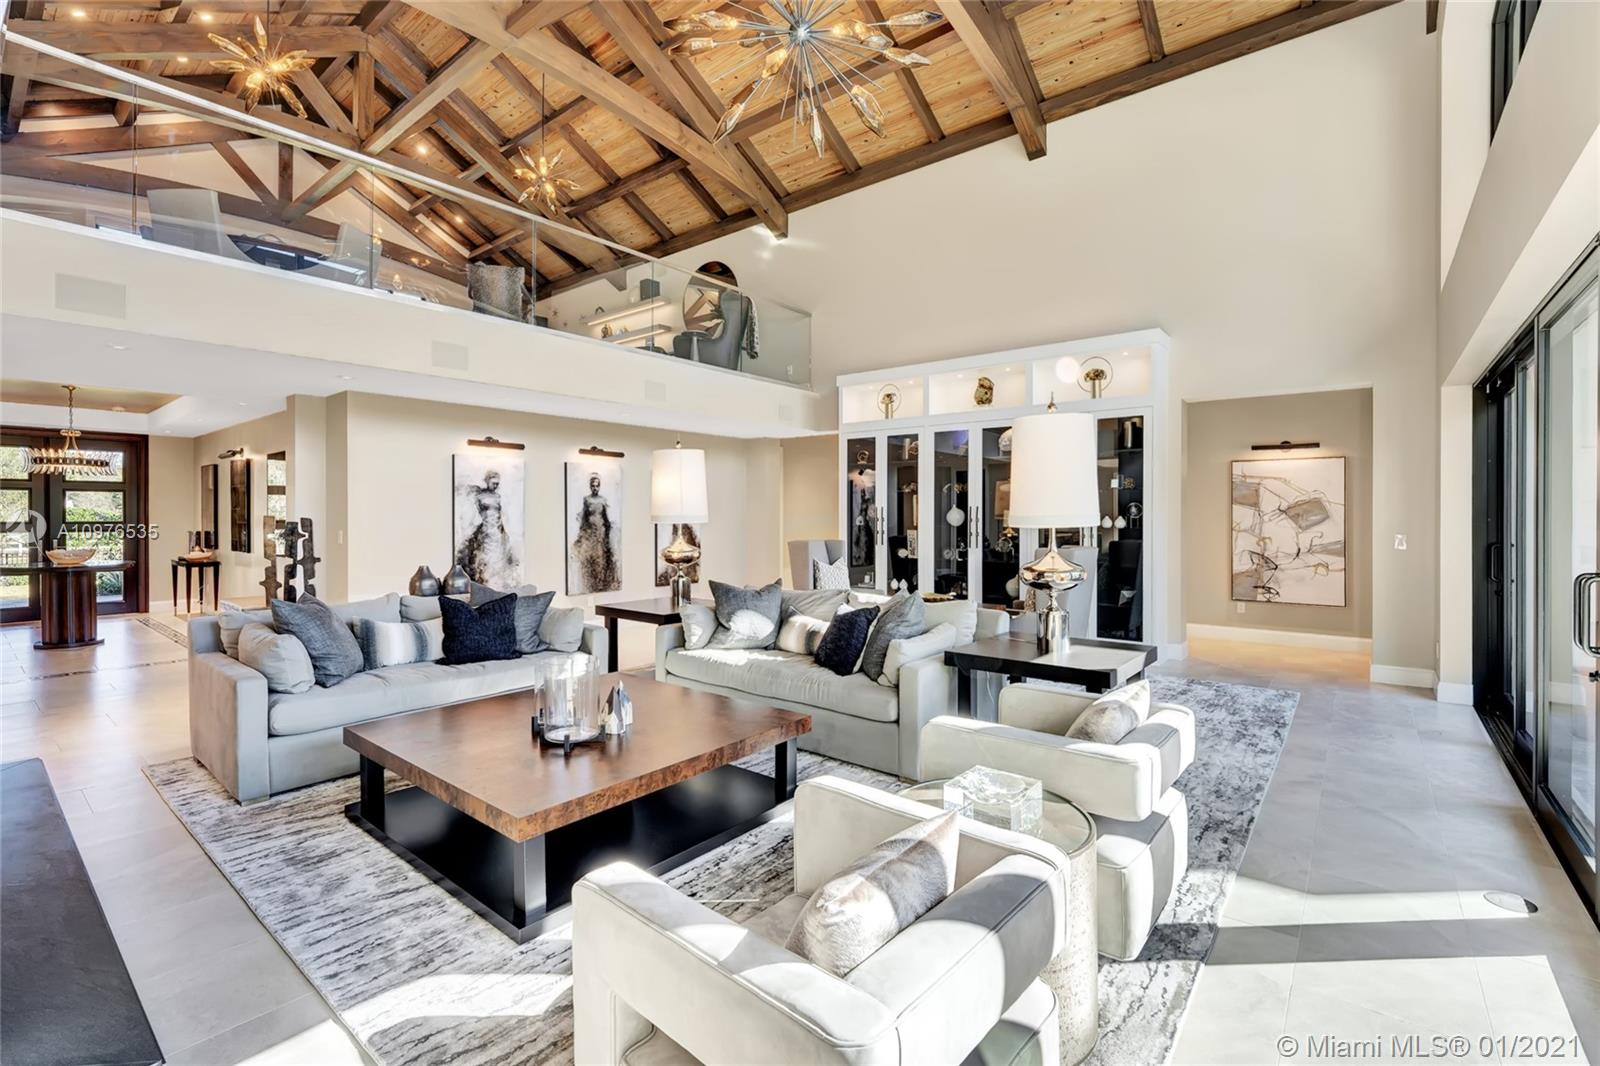 Stunning living area with horn hardware throughout it and the 1/2 bath. Custom burl wood and hand blown glass fixtures add to the luxurious feel in this space.